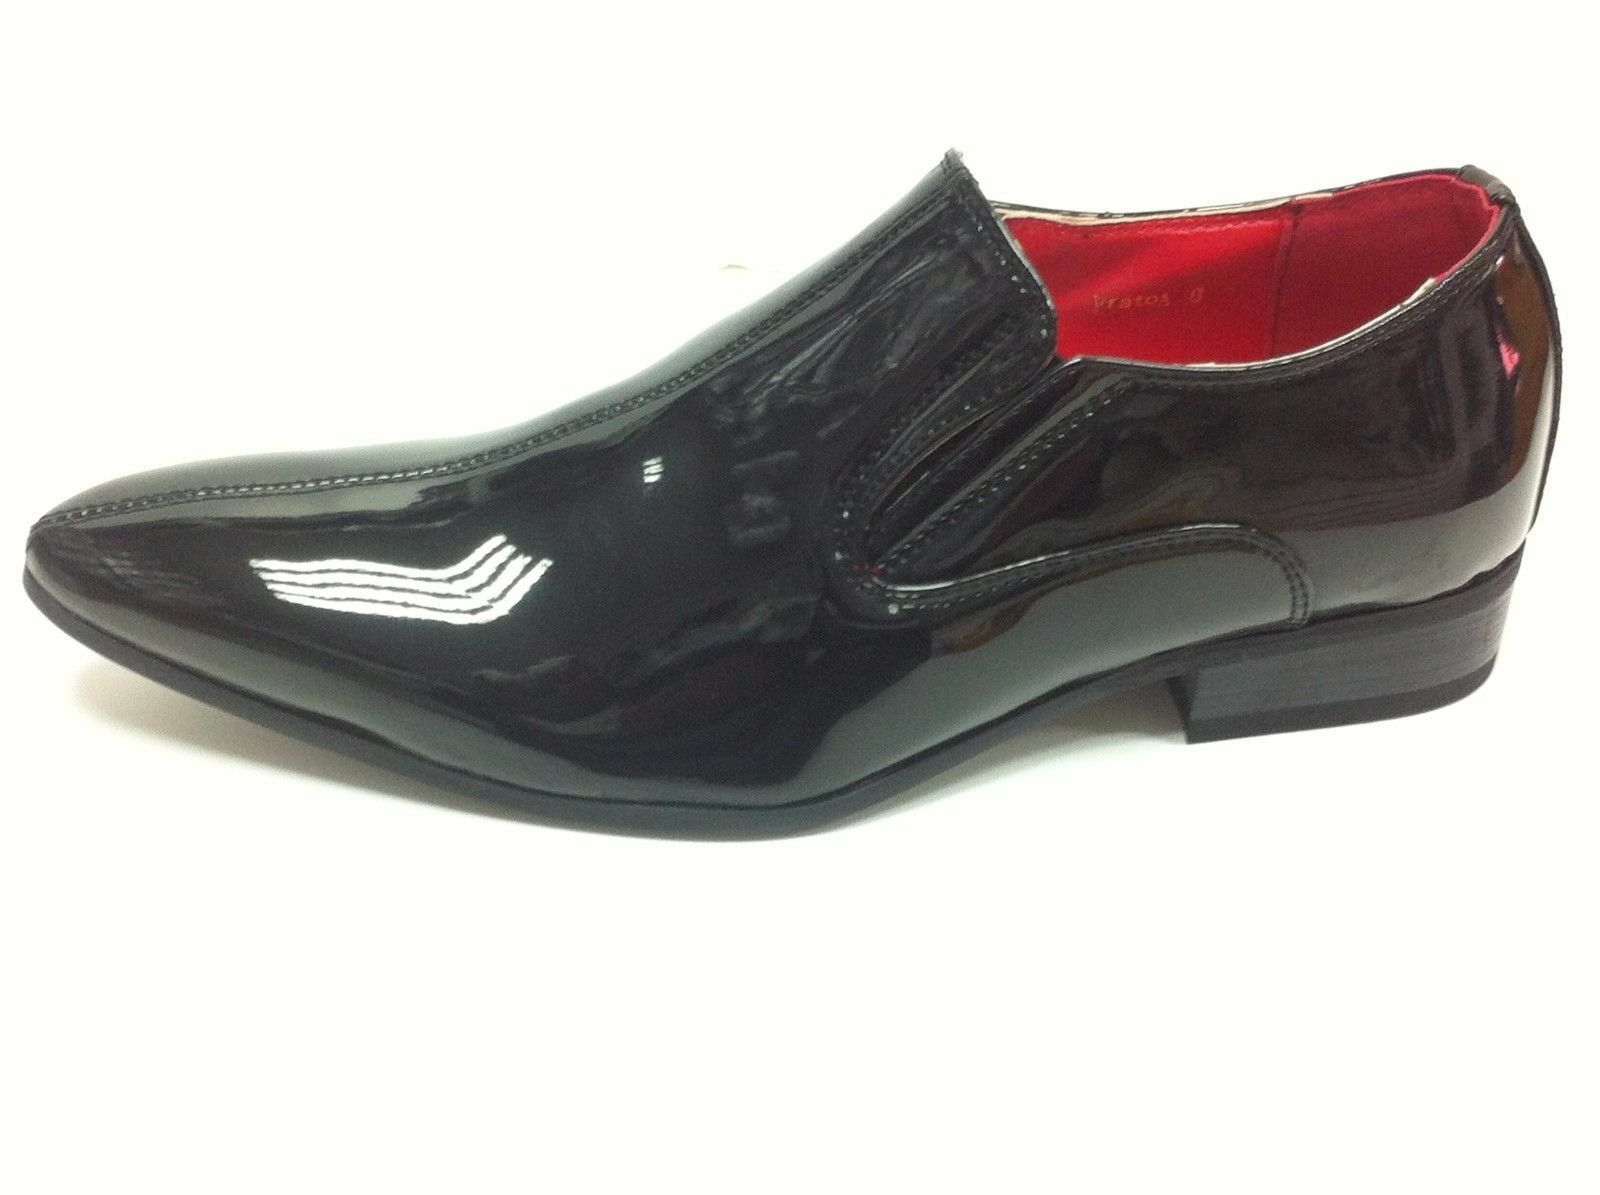 MENS BROGUE PATENT GANGSTER POINTED LEATHER JAZZ SPAT SHOES SIZES 7-11 Black